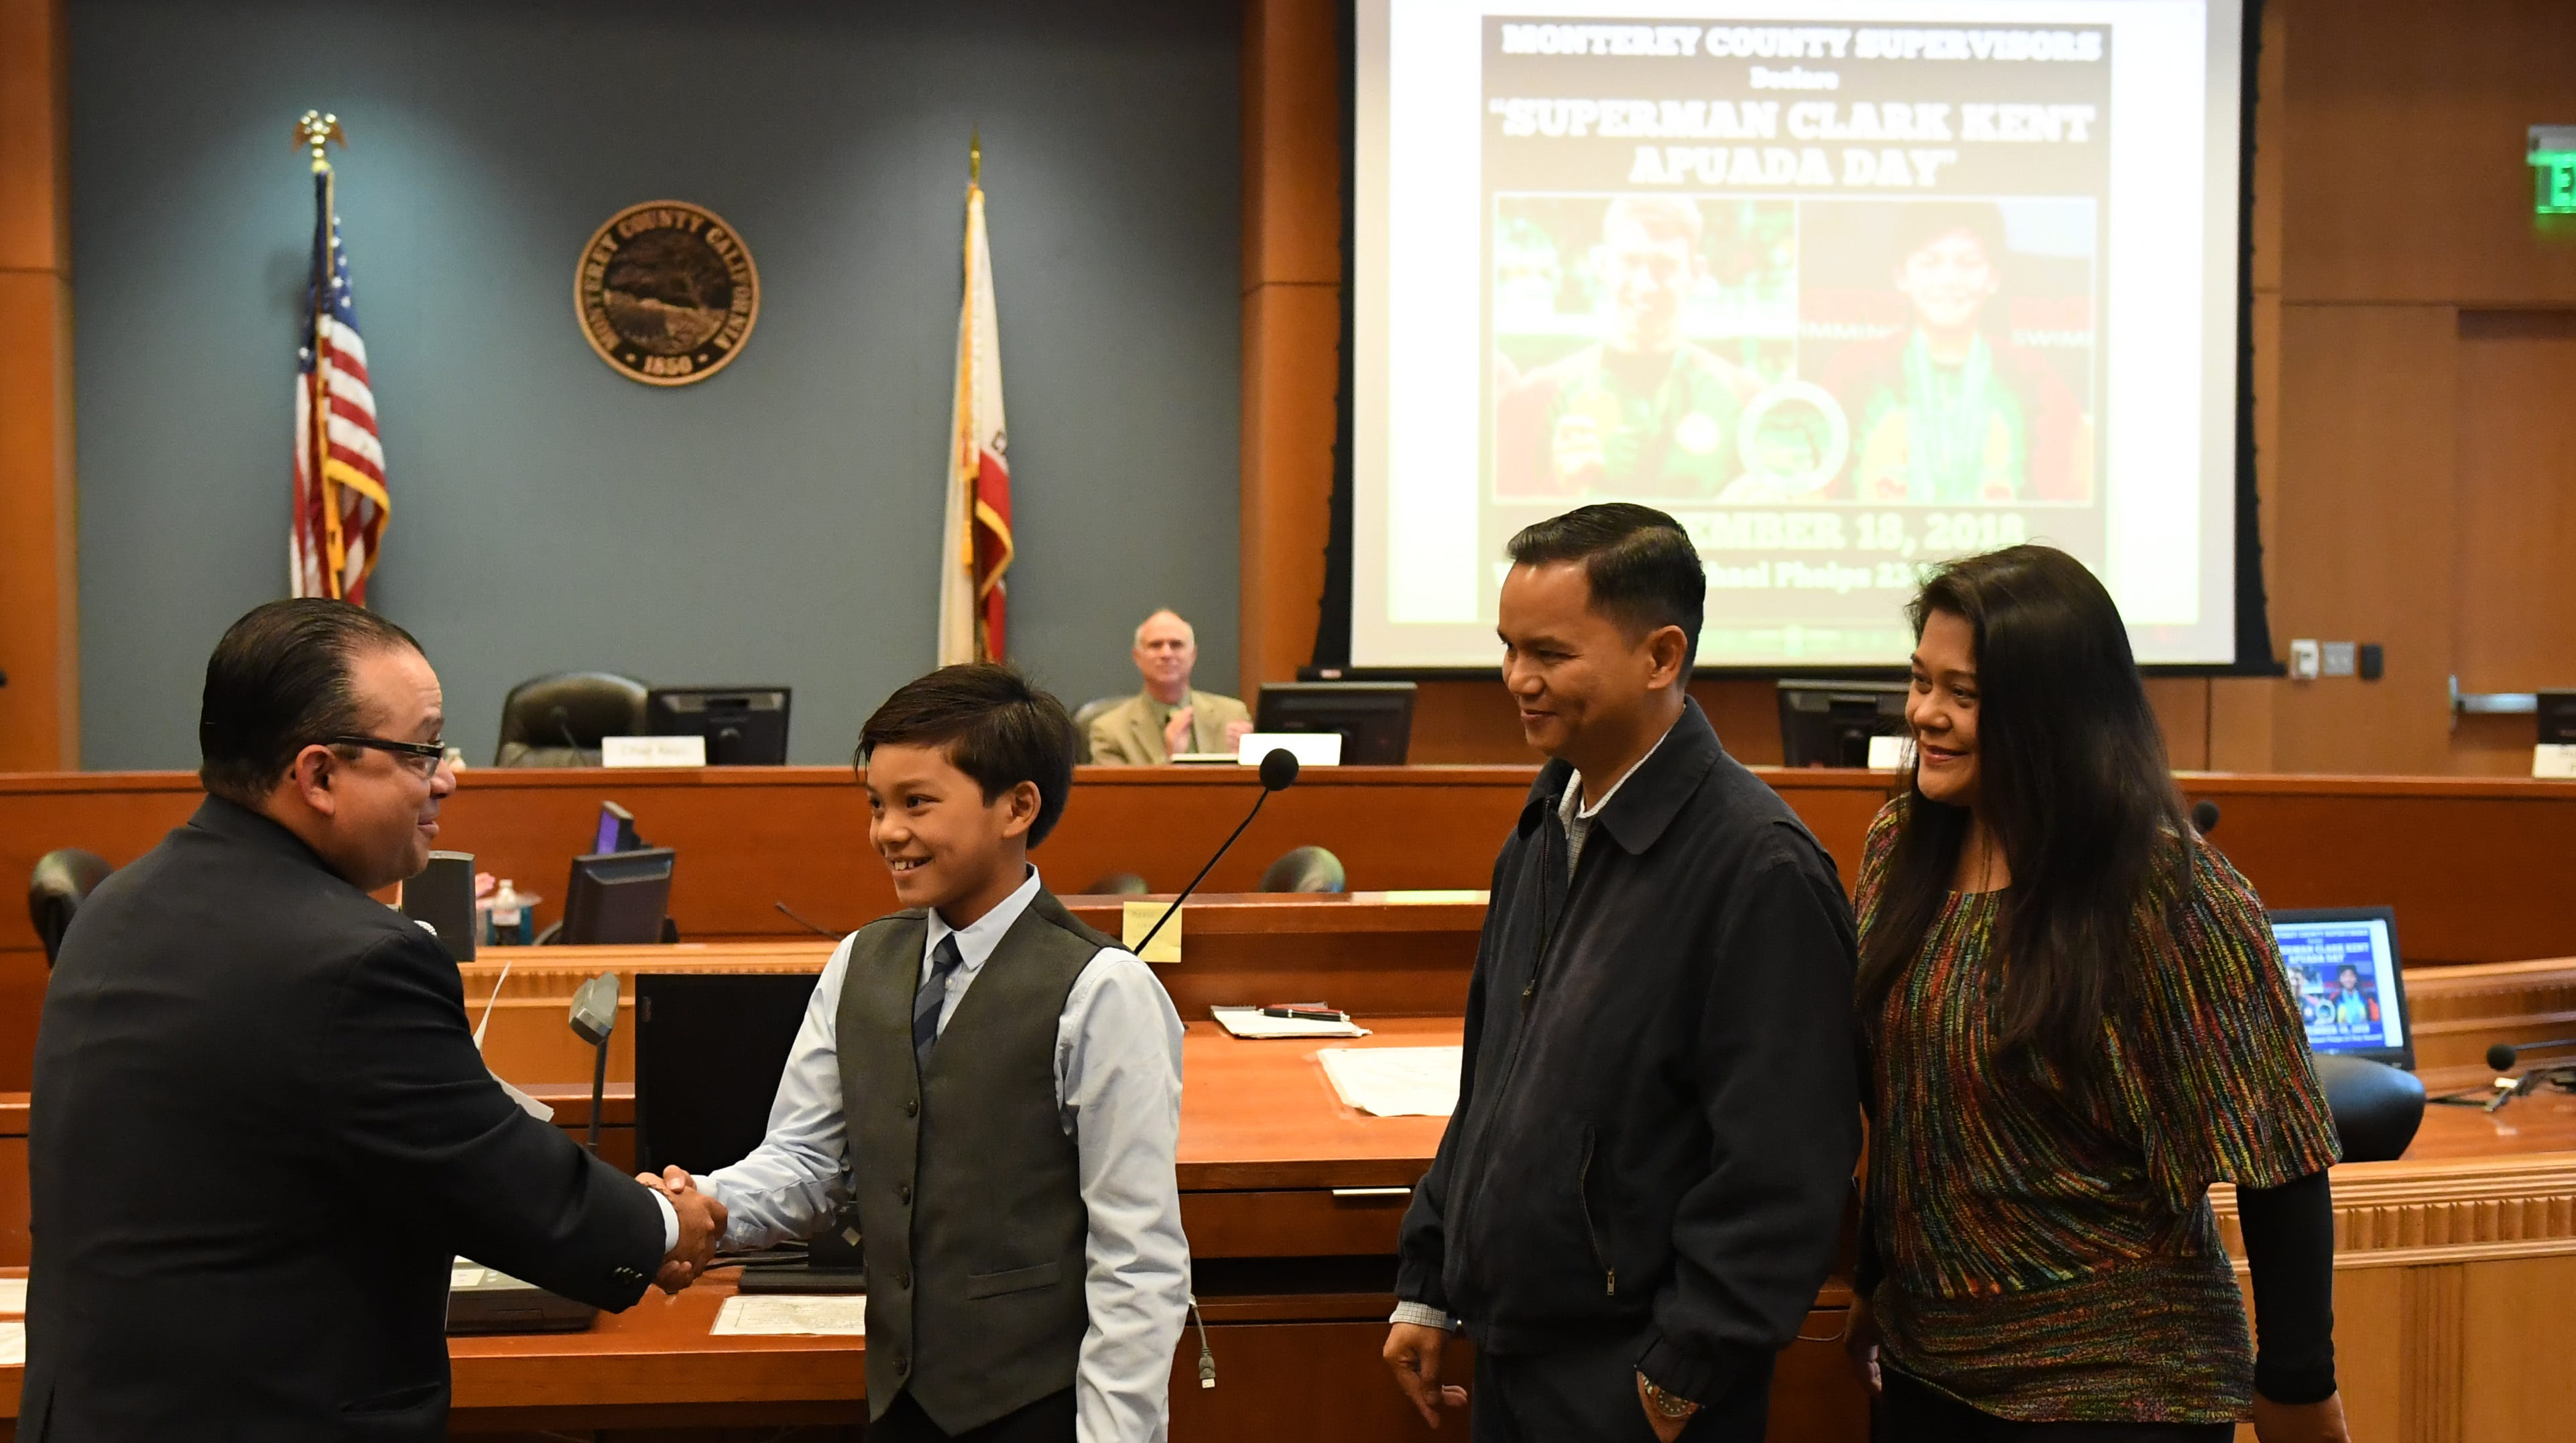 Ten-year-old Clark Kent Apuada (second from left) shakes hands with Monterey County Board of Supervisor Chair Luis Alejo (left) during the ceremony honoring Apuada's achievements.